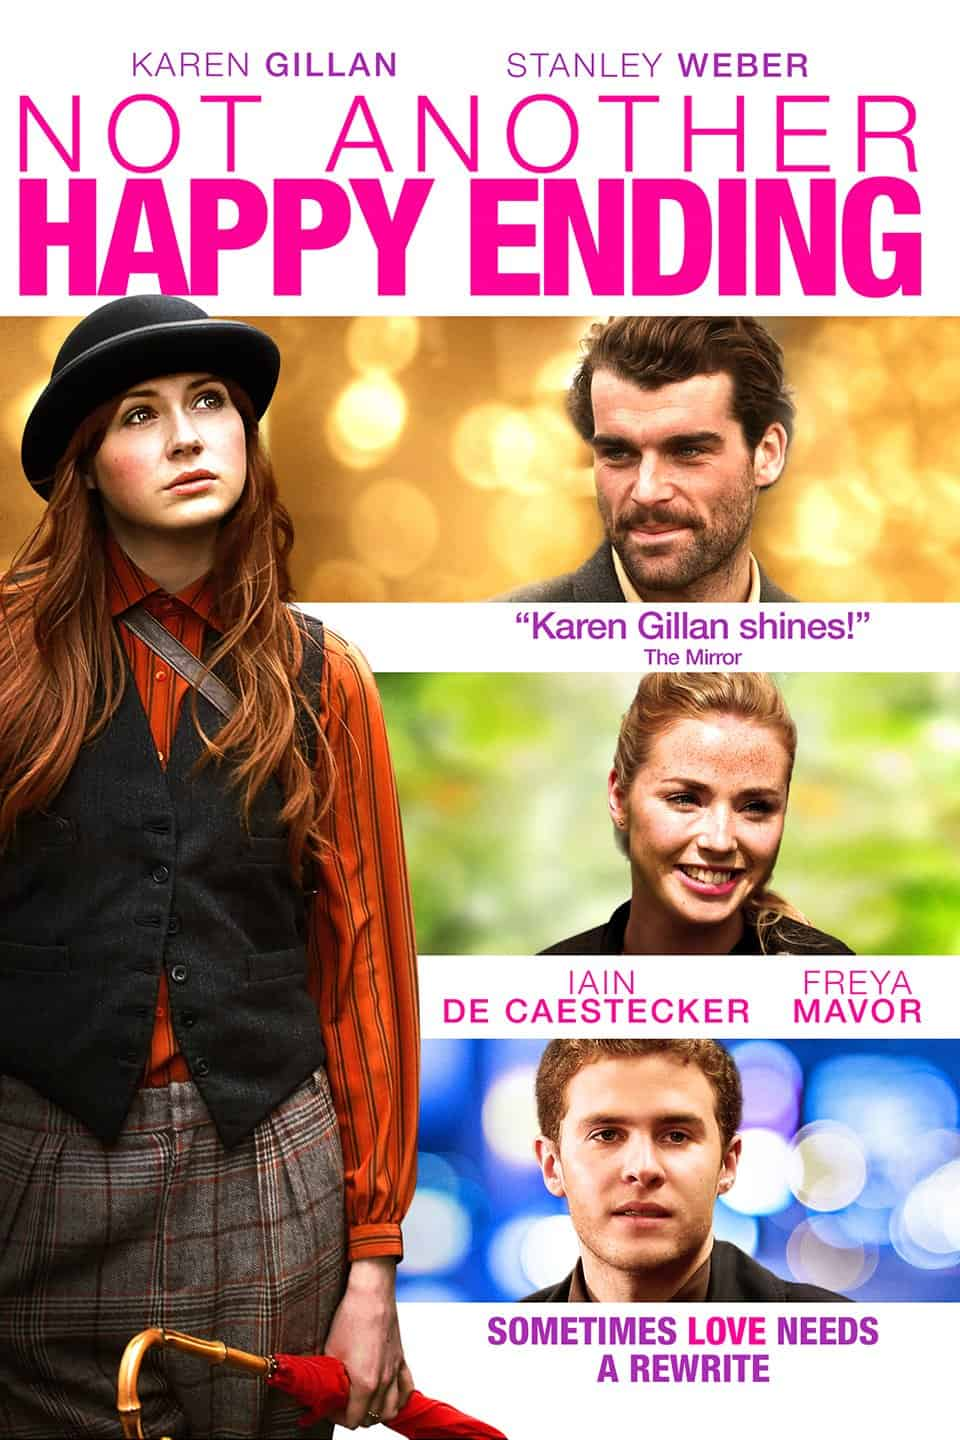 Not Another Happy Ending, 2013